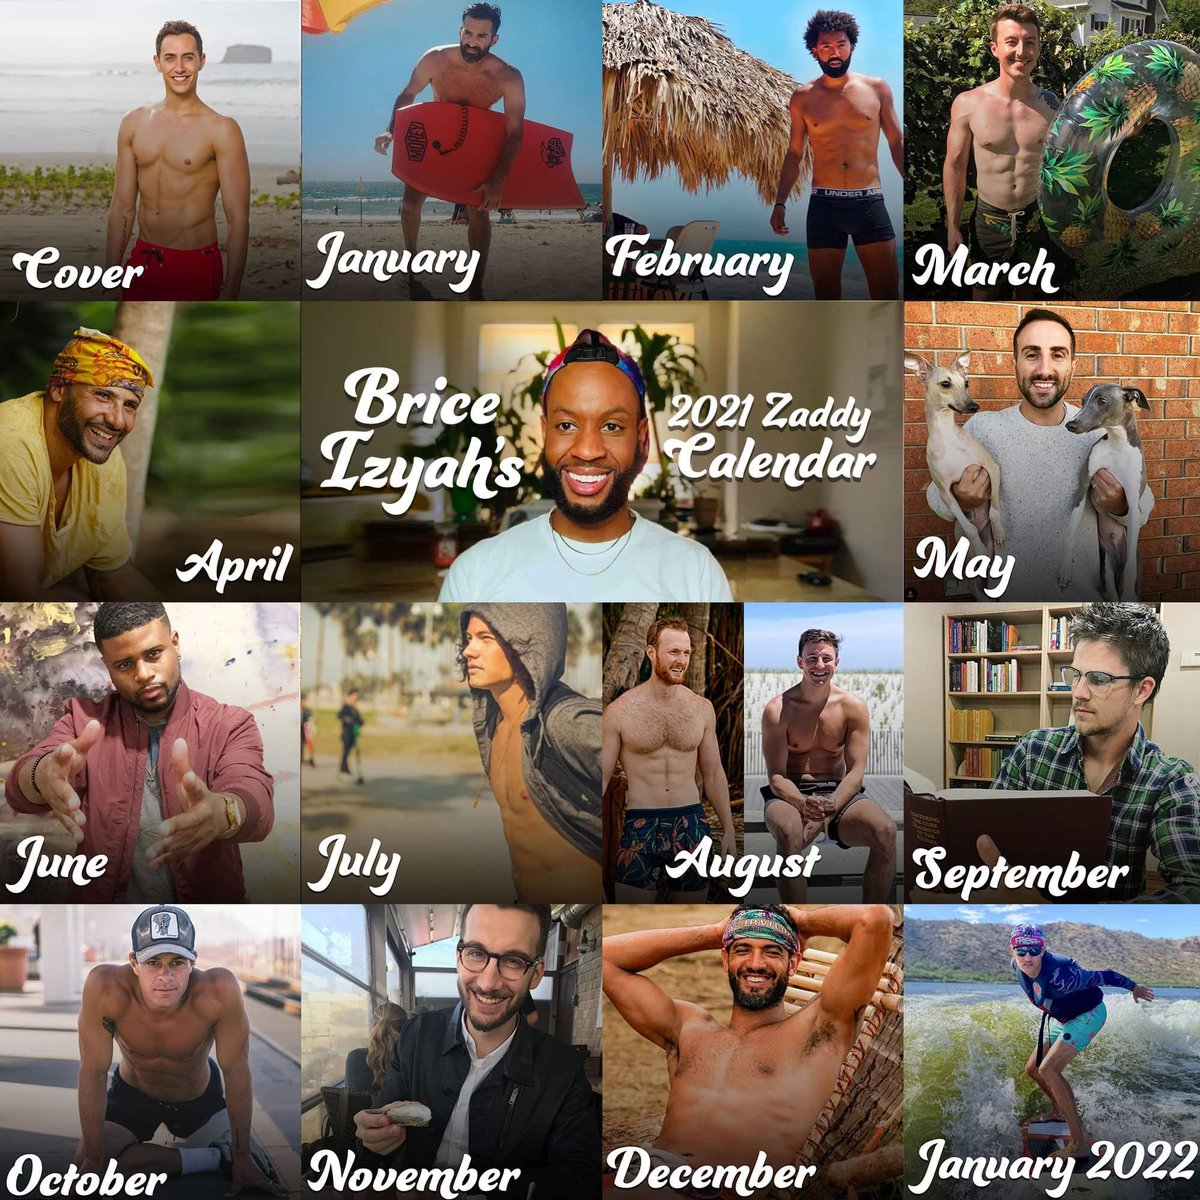 Stephen Fishbach On Twitter I M Deeply Honored To Be The November Zaddy For Briceizyah S 2021 Zaddy Calendar And Especially Honored To Be Both The Oldest Zaddy And The Zaddy Pictured Wearing The